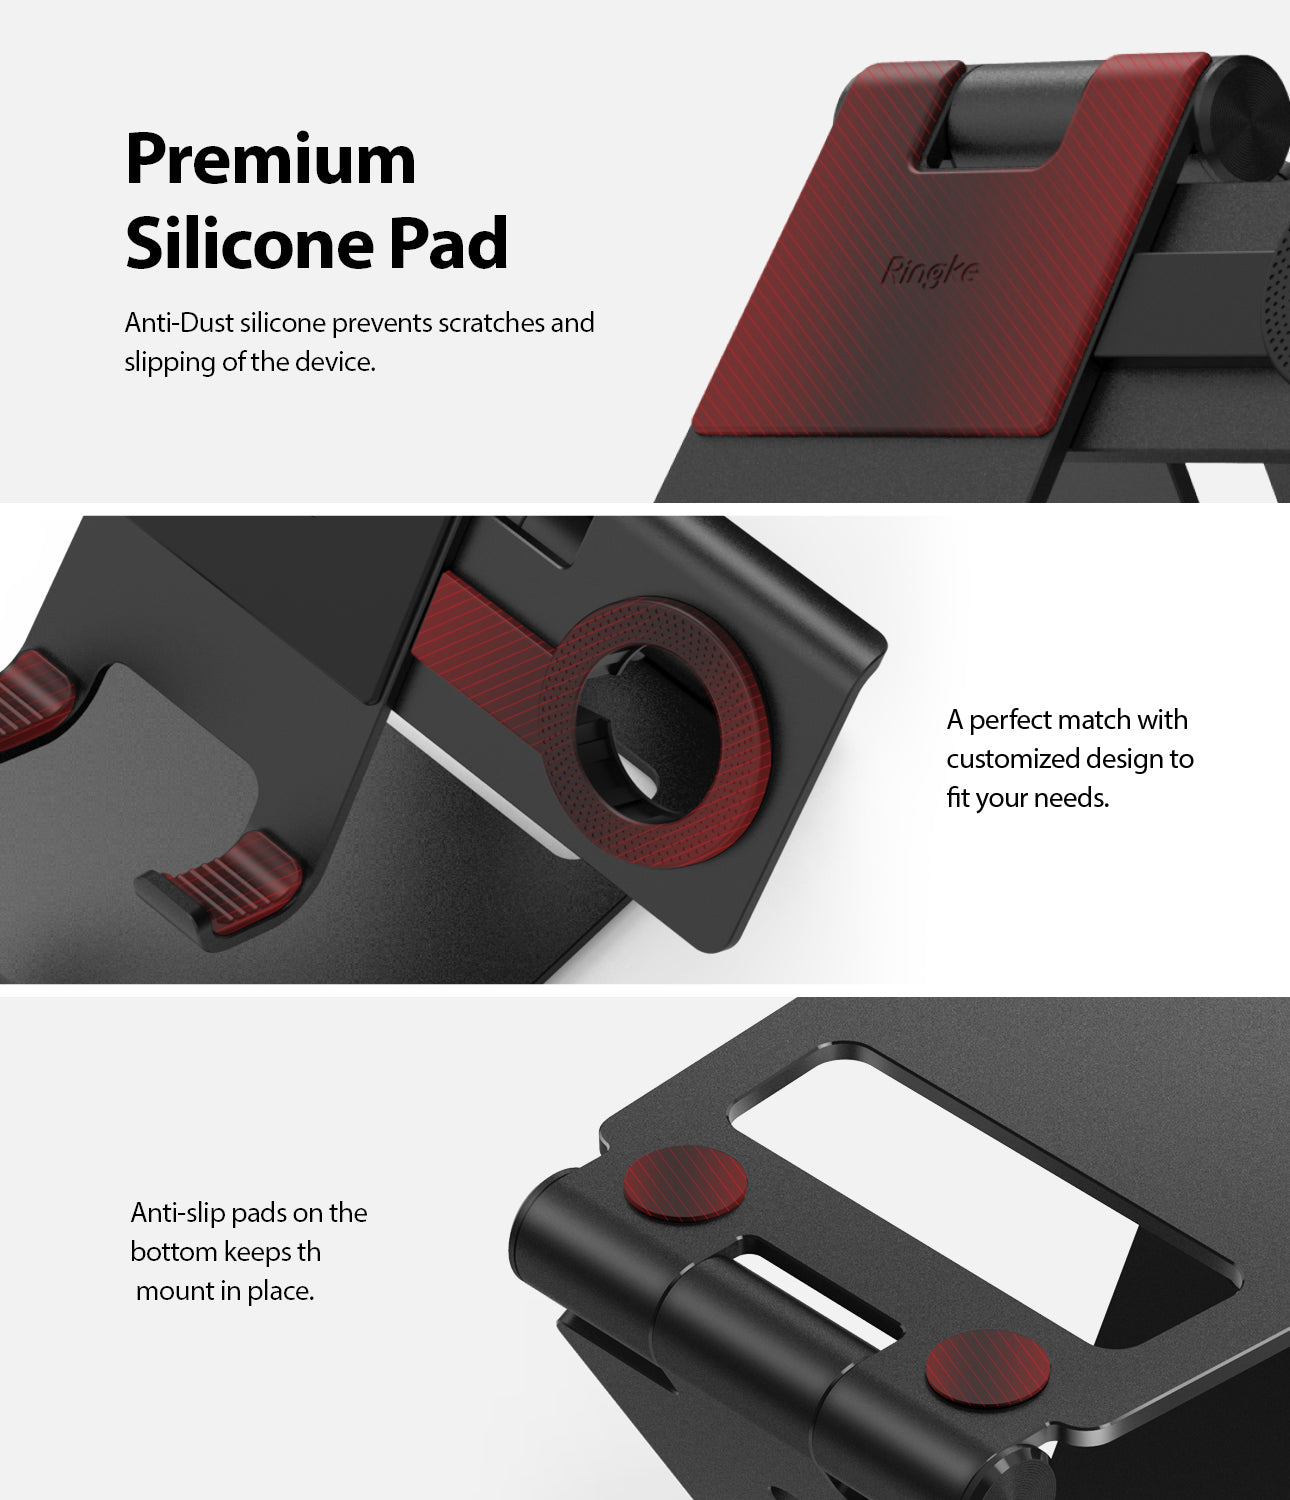 premium silicone pad to prevent sliding and the stand hold still